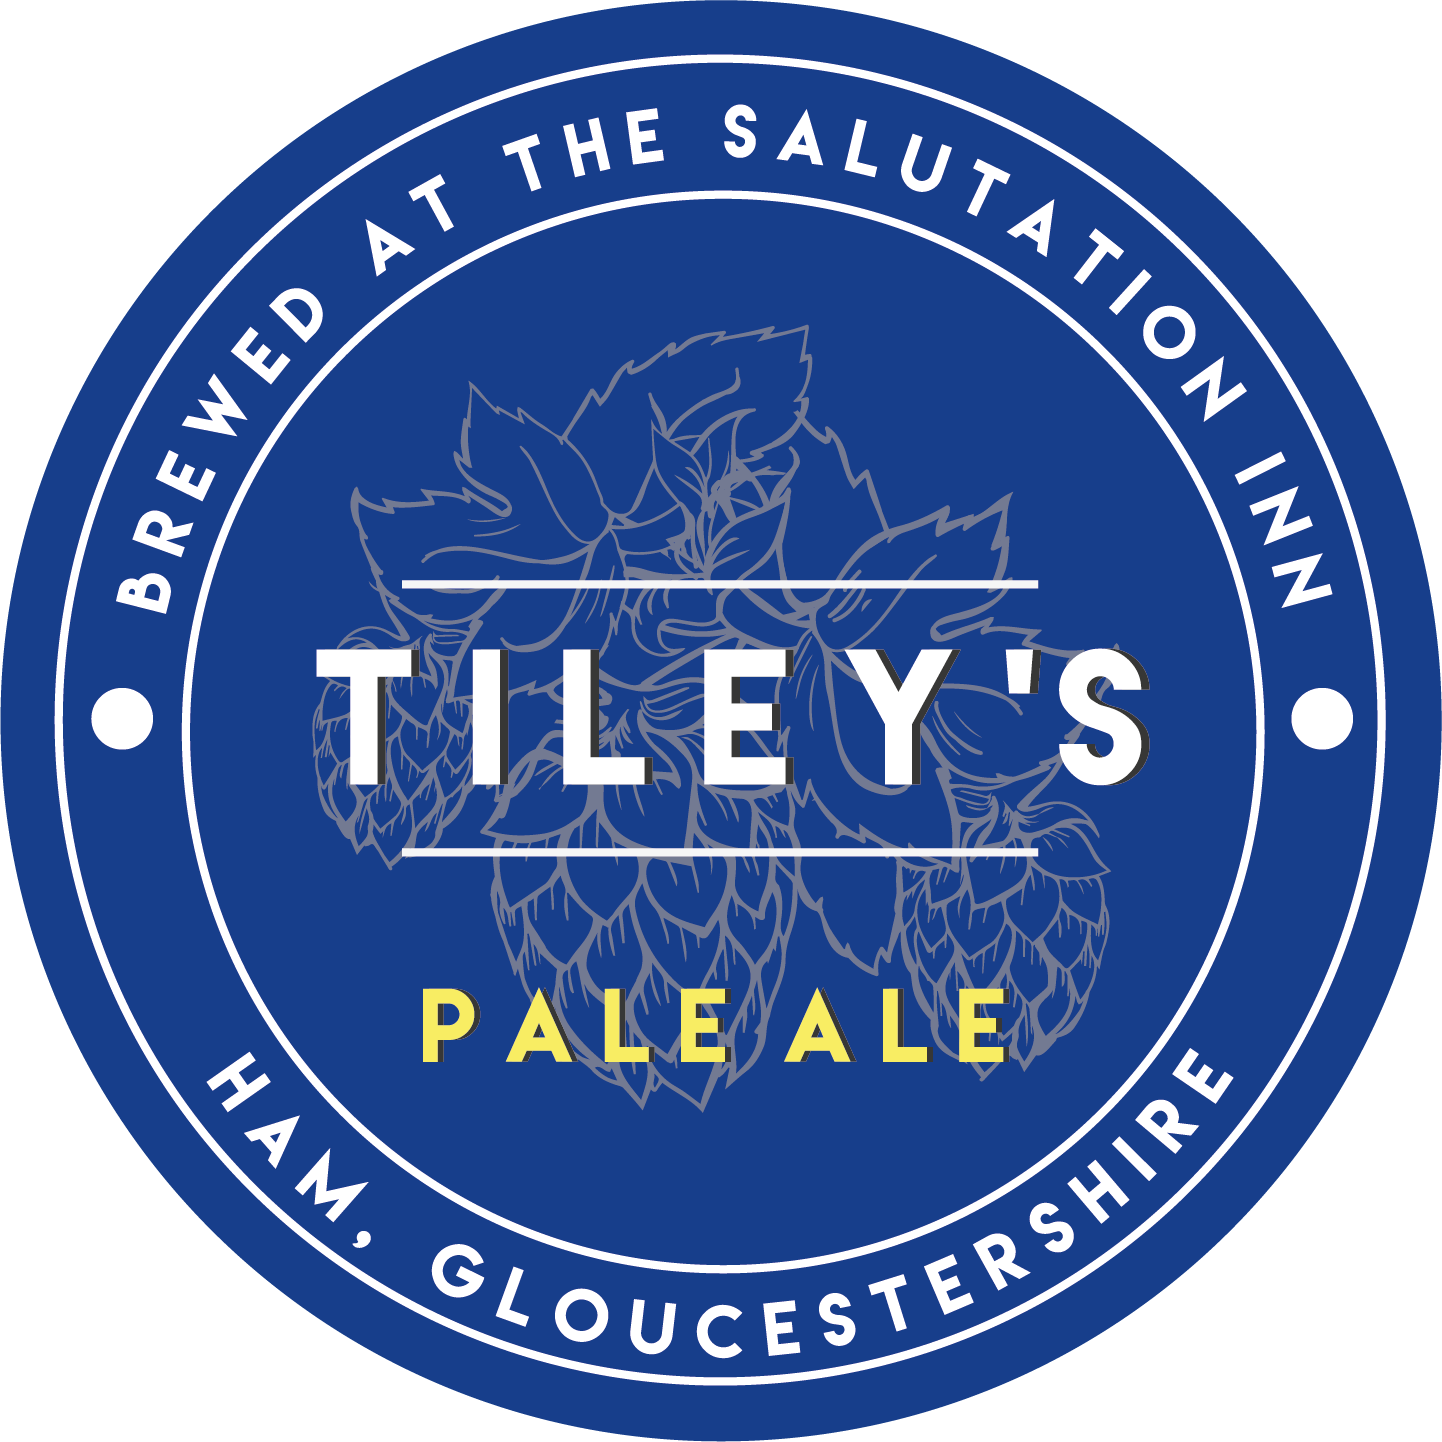 Tiley's Special Pale Ale 4.5% Bag-in-Box